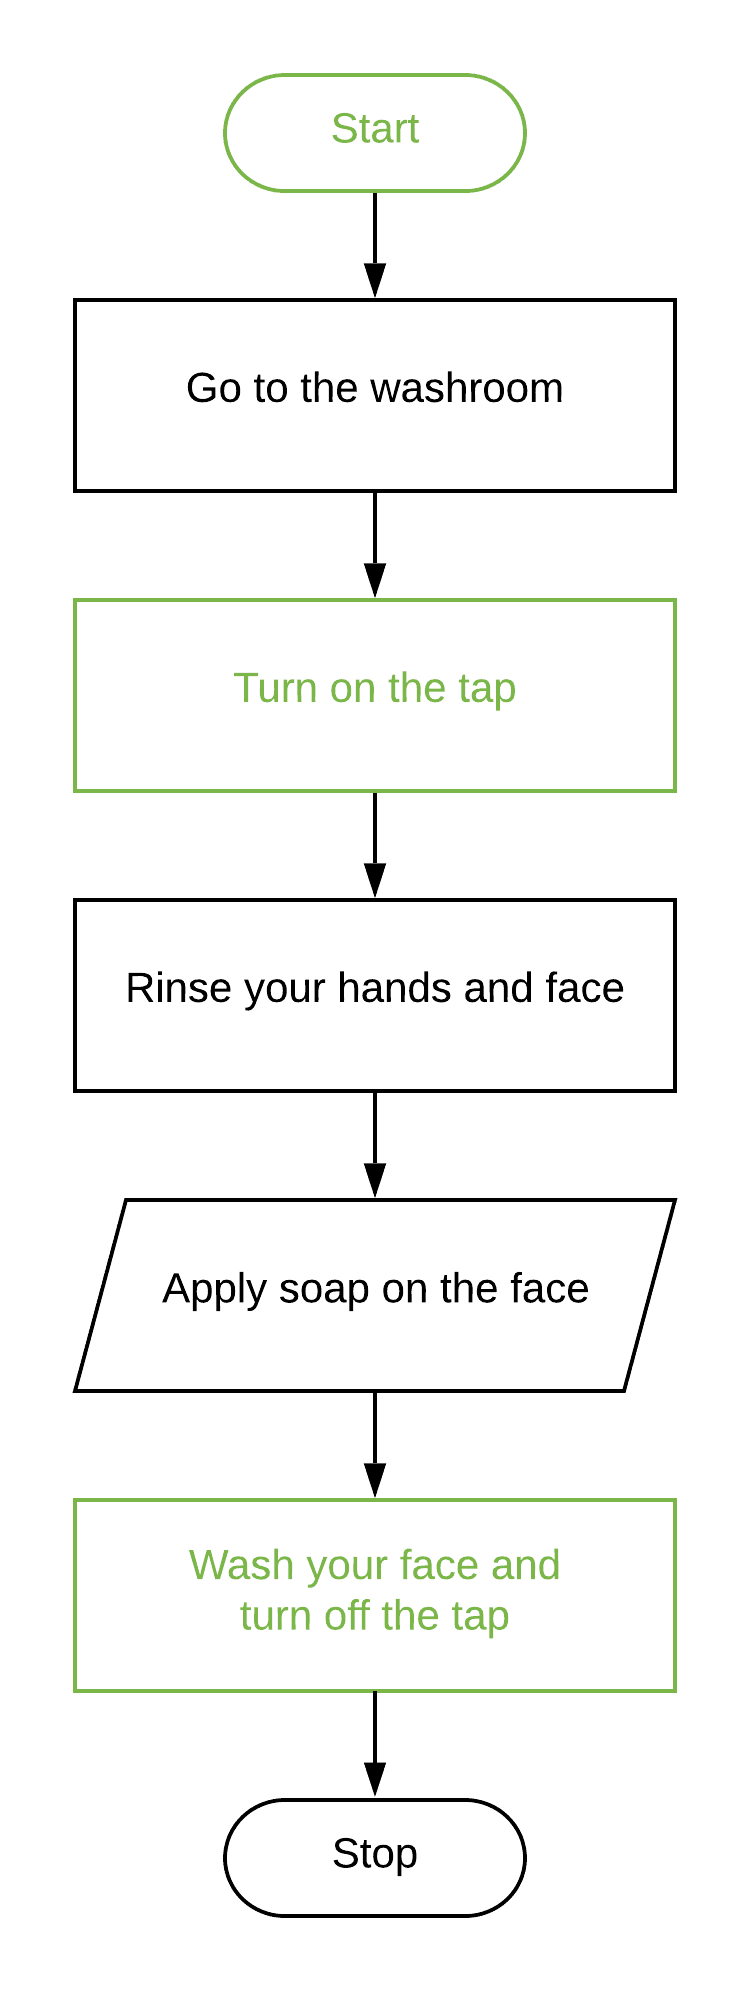 Correct the symbols of the Flowchart to wash the face